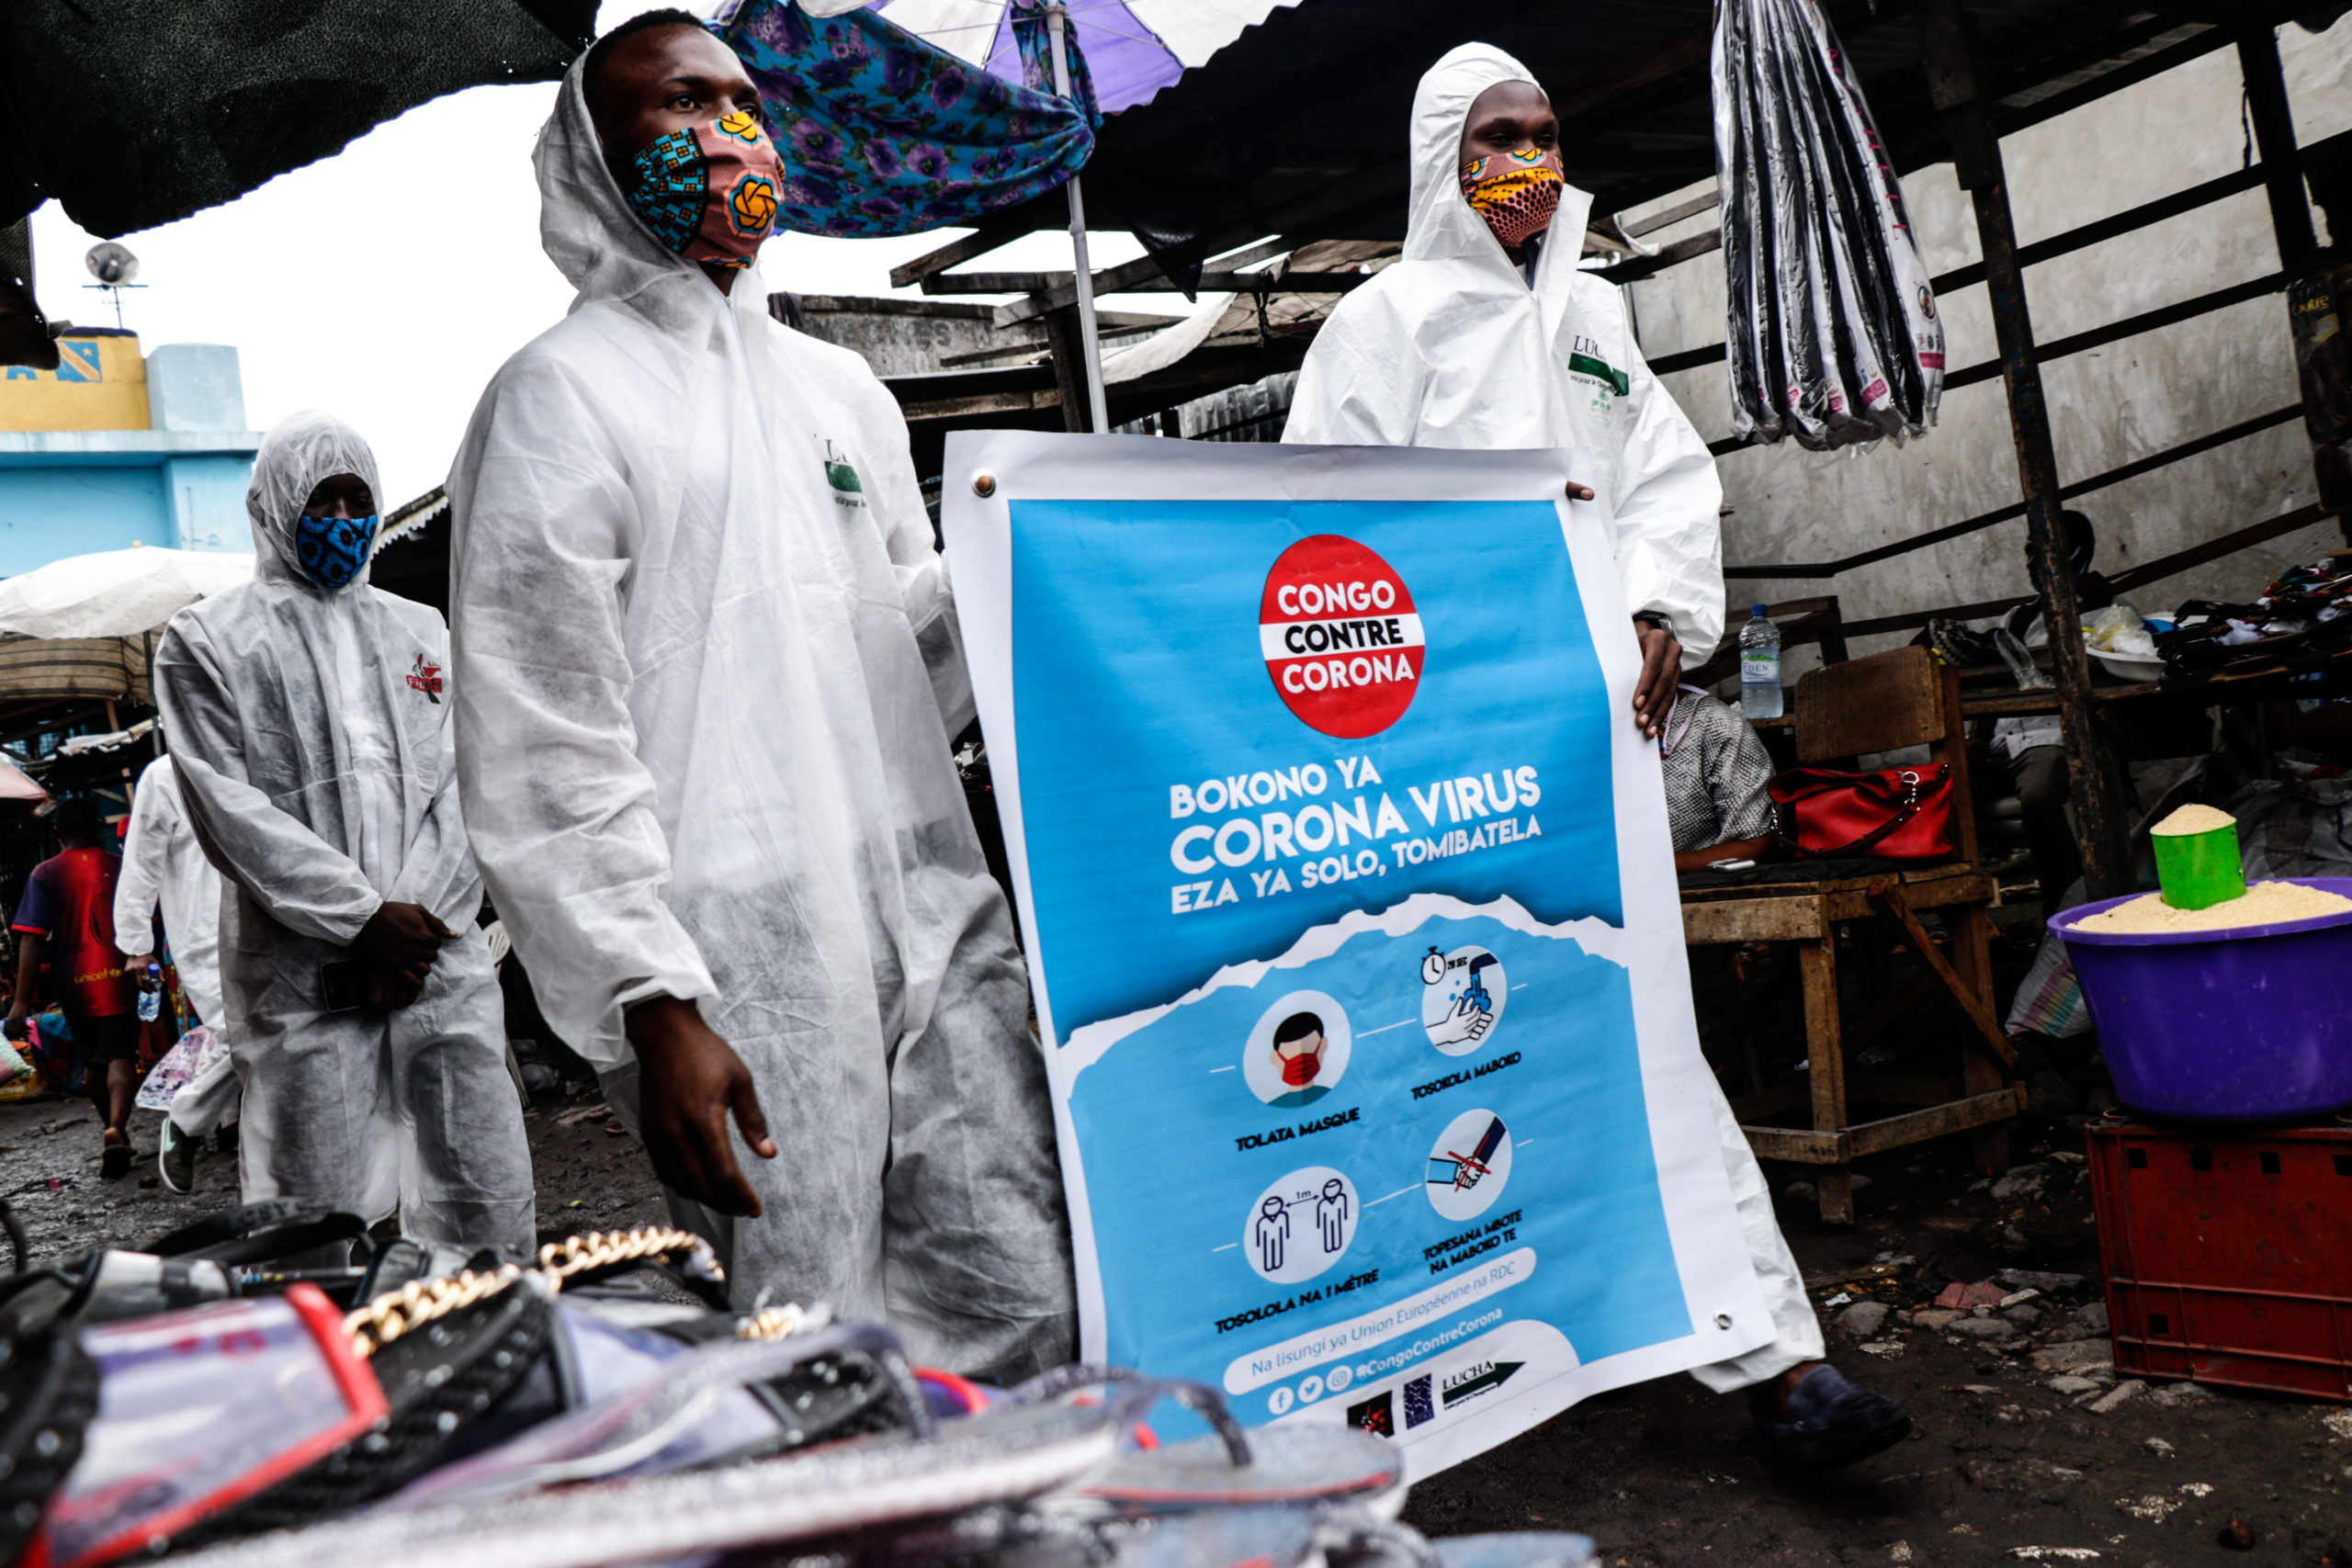 Kinshasa, DRC, May 2020. Members of the pro-democracy and civil society movement Filimbi (« whistle » in swahili) carry out a public educational campaign about coronavirus in a market in Congo's capital Kinshasa in May. © Justin Makangara for Fondation Carmignac